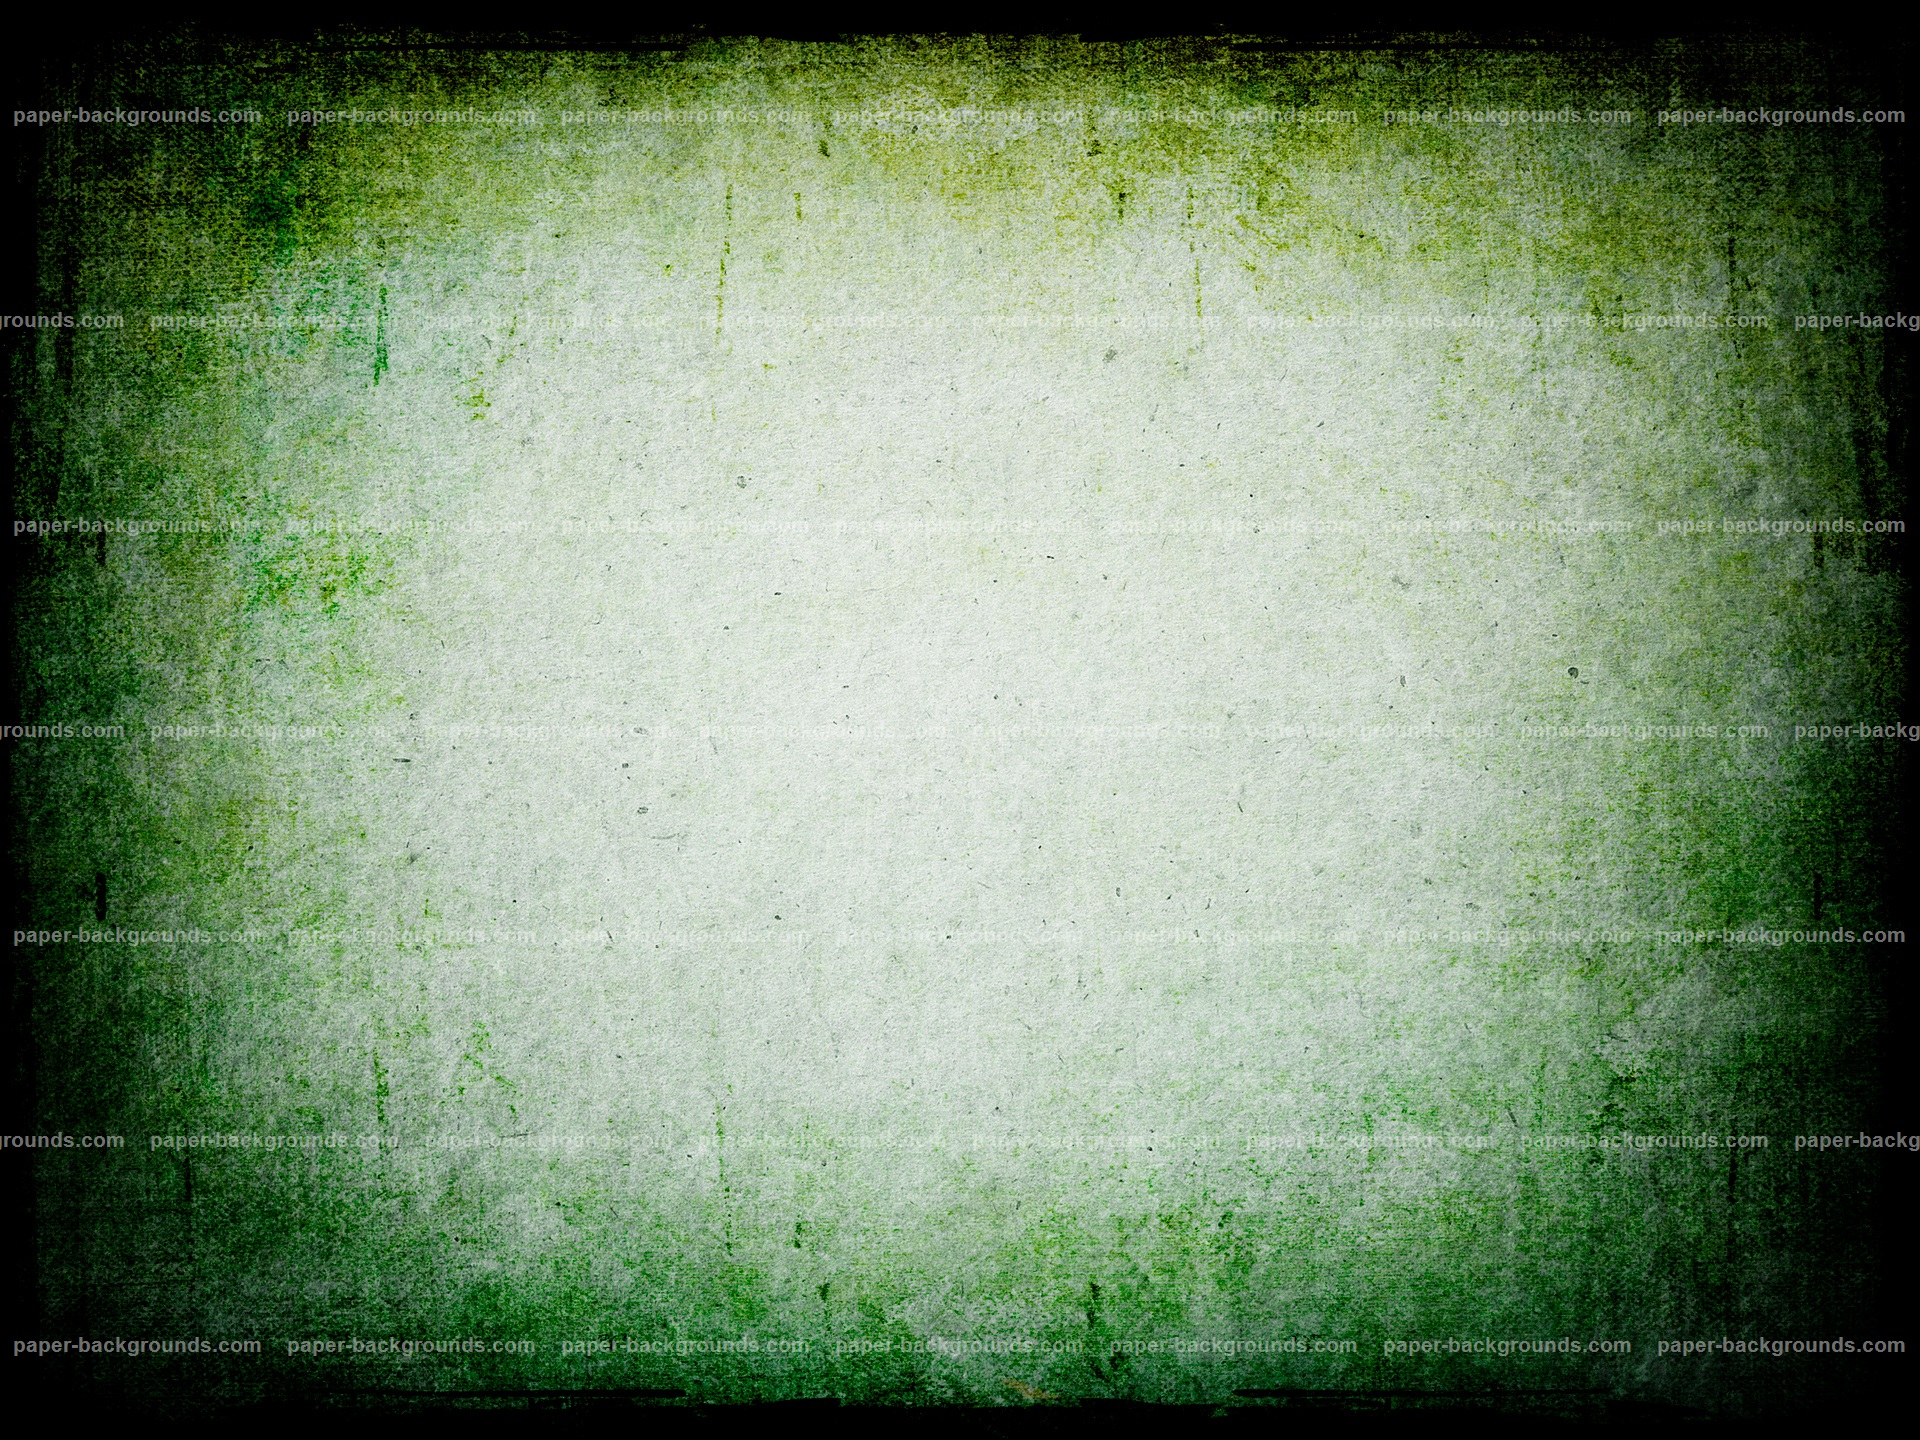 grunge green paper background hd Paper Backgrounds 1920x1440